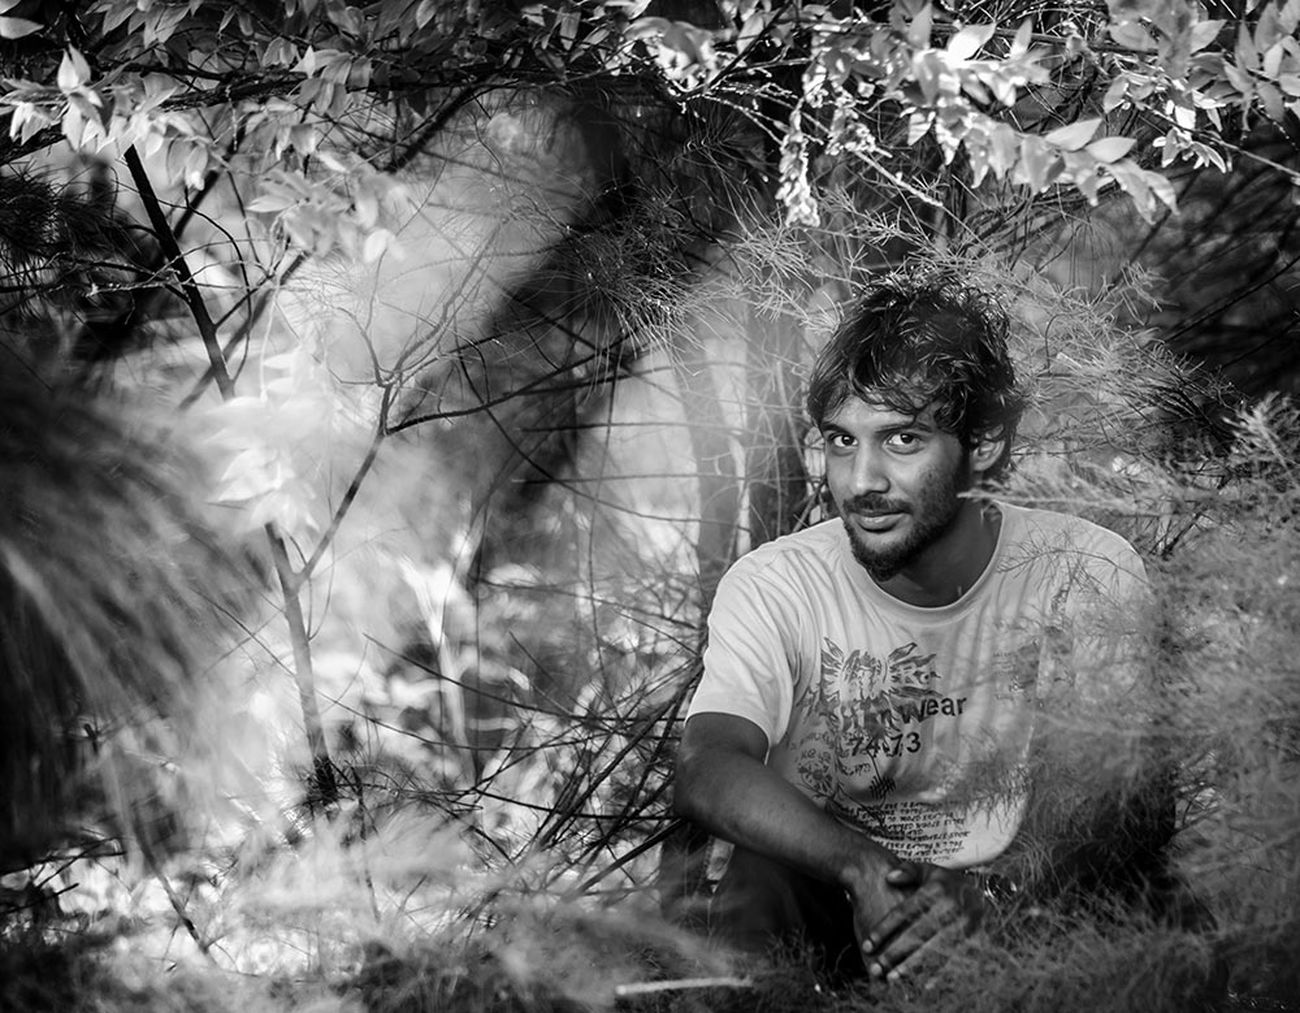 Freelance Life Nature Woods Hulhumale' Portraits Living Real People Portrait Portrait Of A Friend Portraiture Freelancerlife Maldives Like Nikonphotography Nikon From My Point Of View Photooftheday Tropical Traveler Island Islands B&W Portrait B&w Photography Tropical Holiday